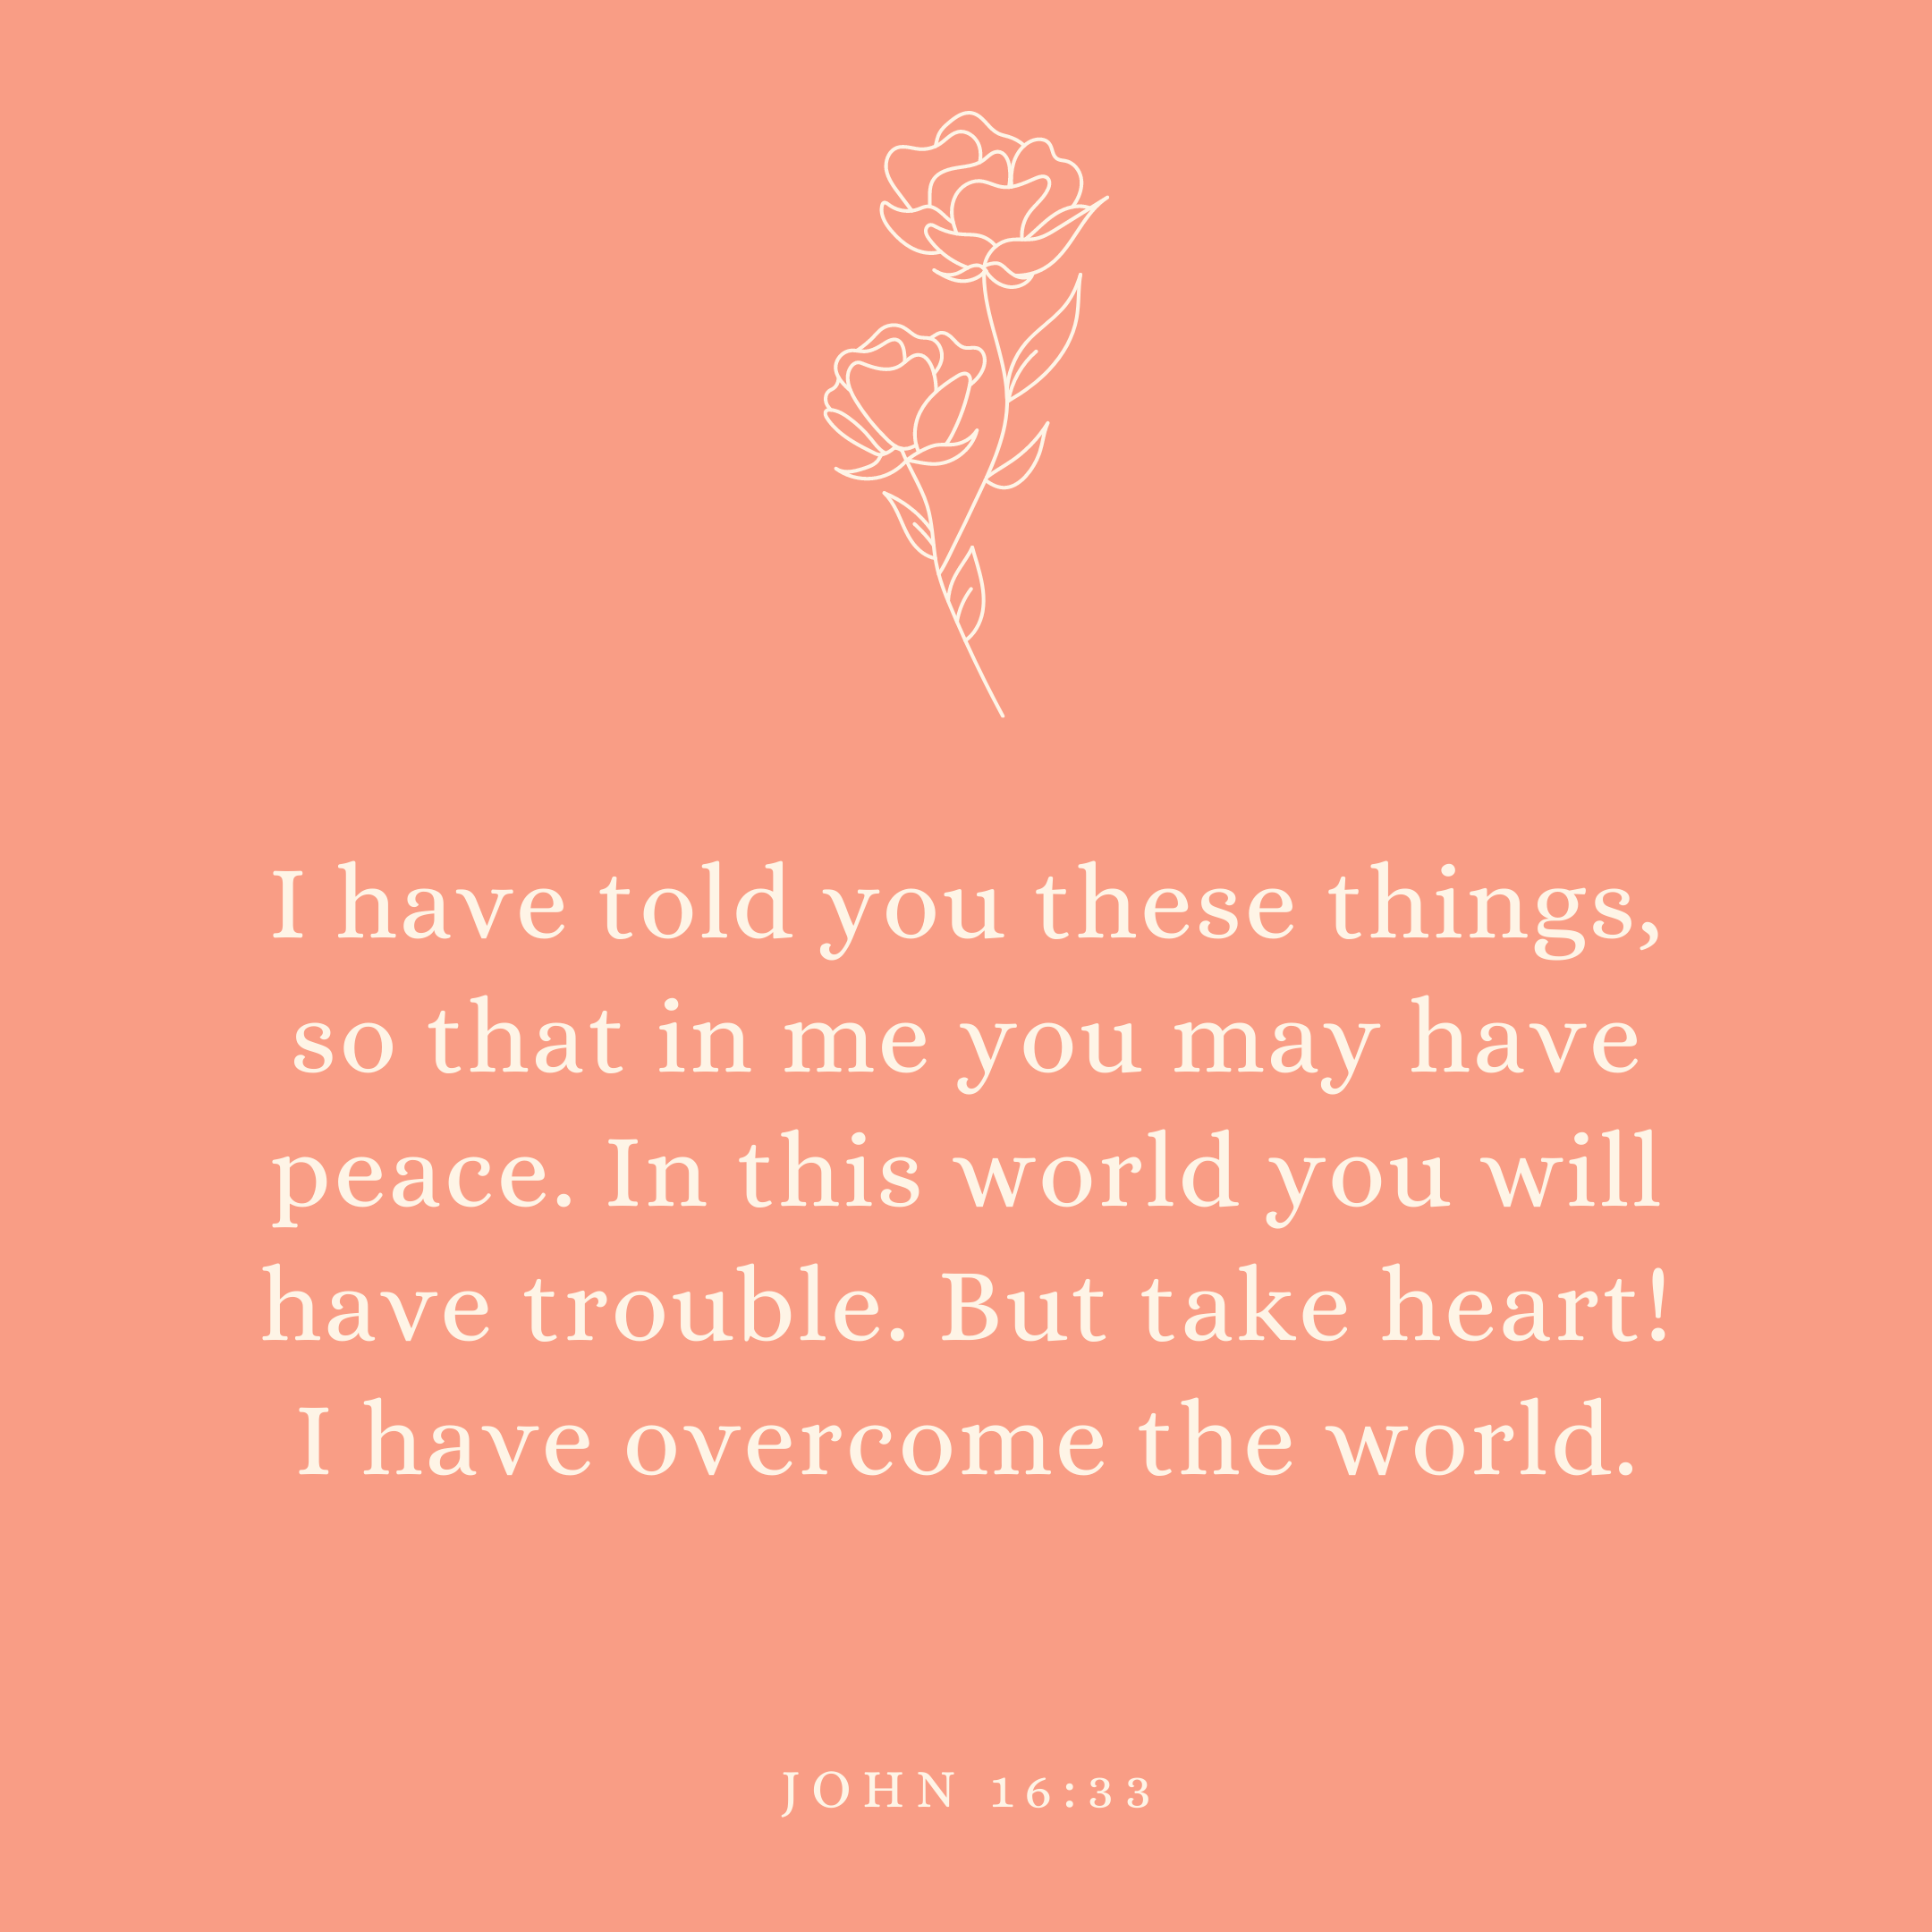 John 16:33 I have told you these things, so that in me you may have peace. In this world you will have trouble. But take heart! I have overcome the world.